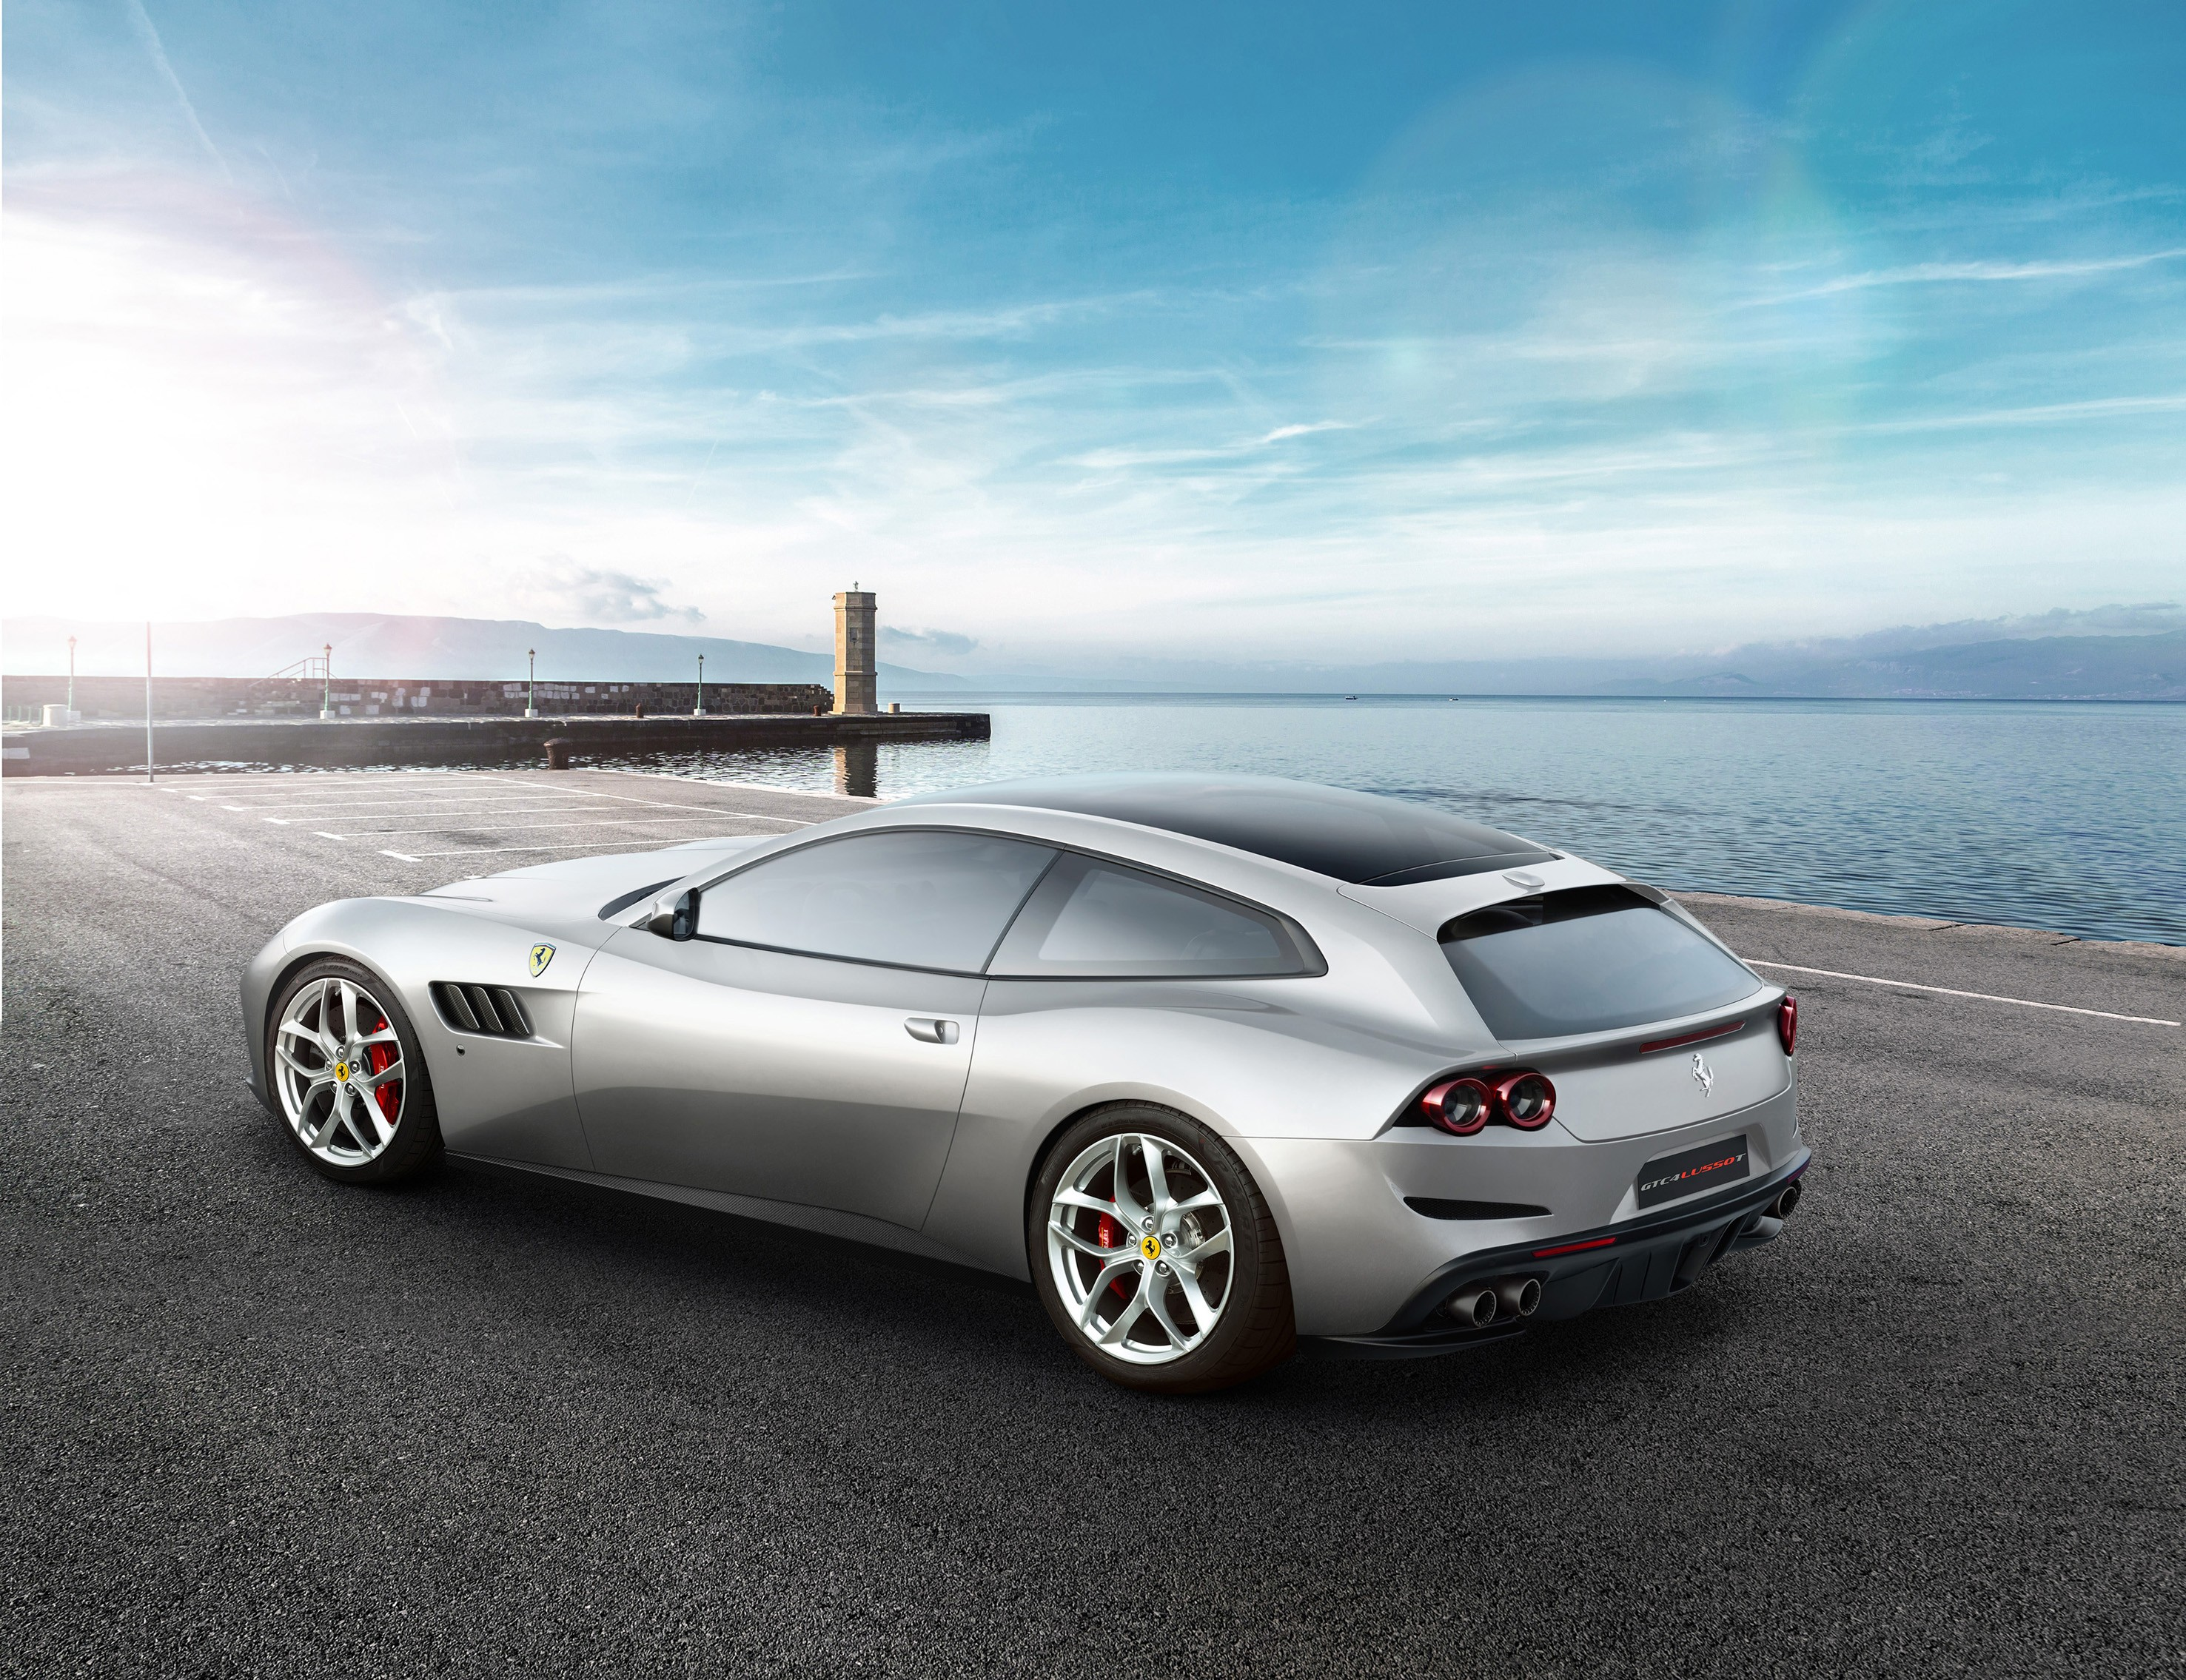 en cars specialty used out print carstock car ferrari new detail store